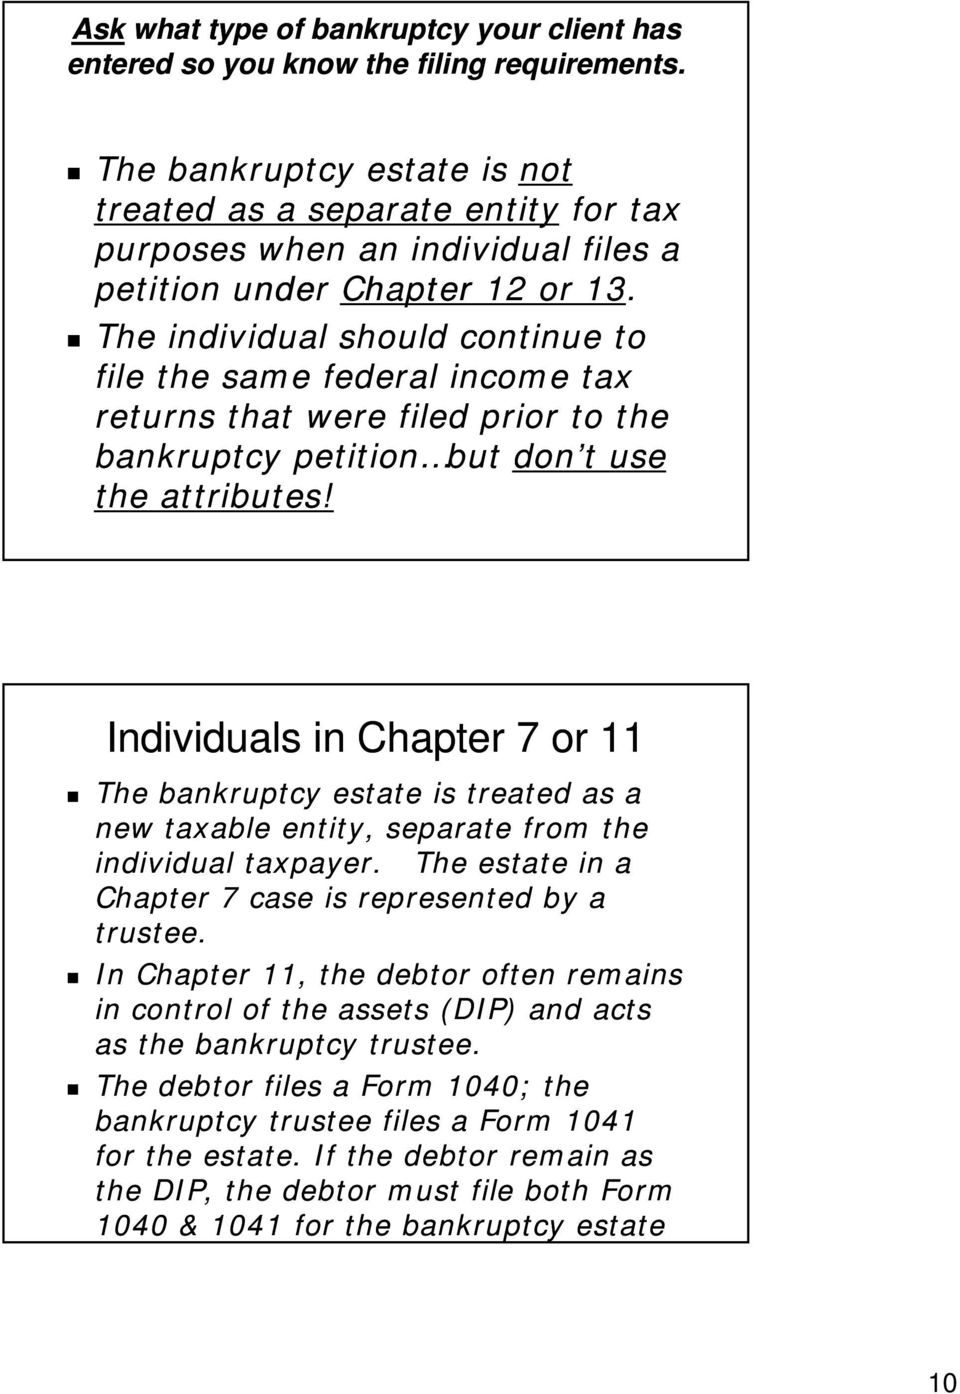 The individual should continue to file the same federal income tax returns that were filed prior to the bankruptcy petition but don t use the attributes!